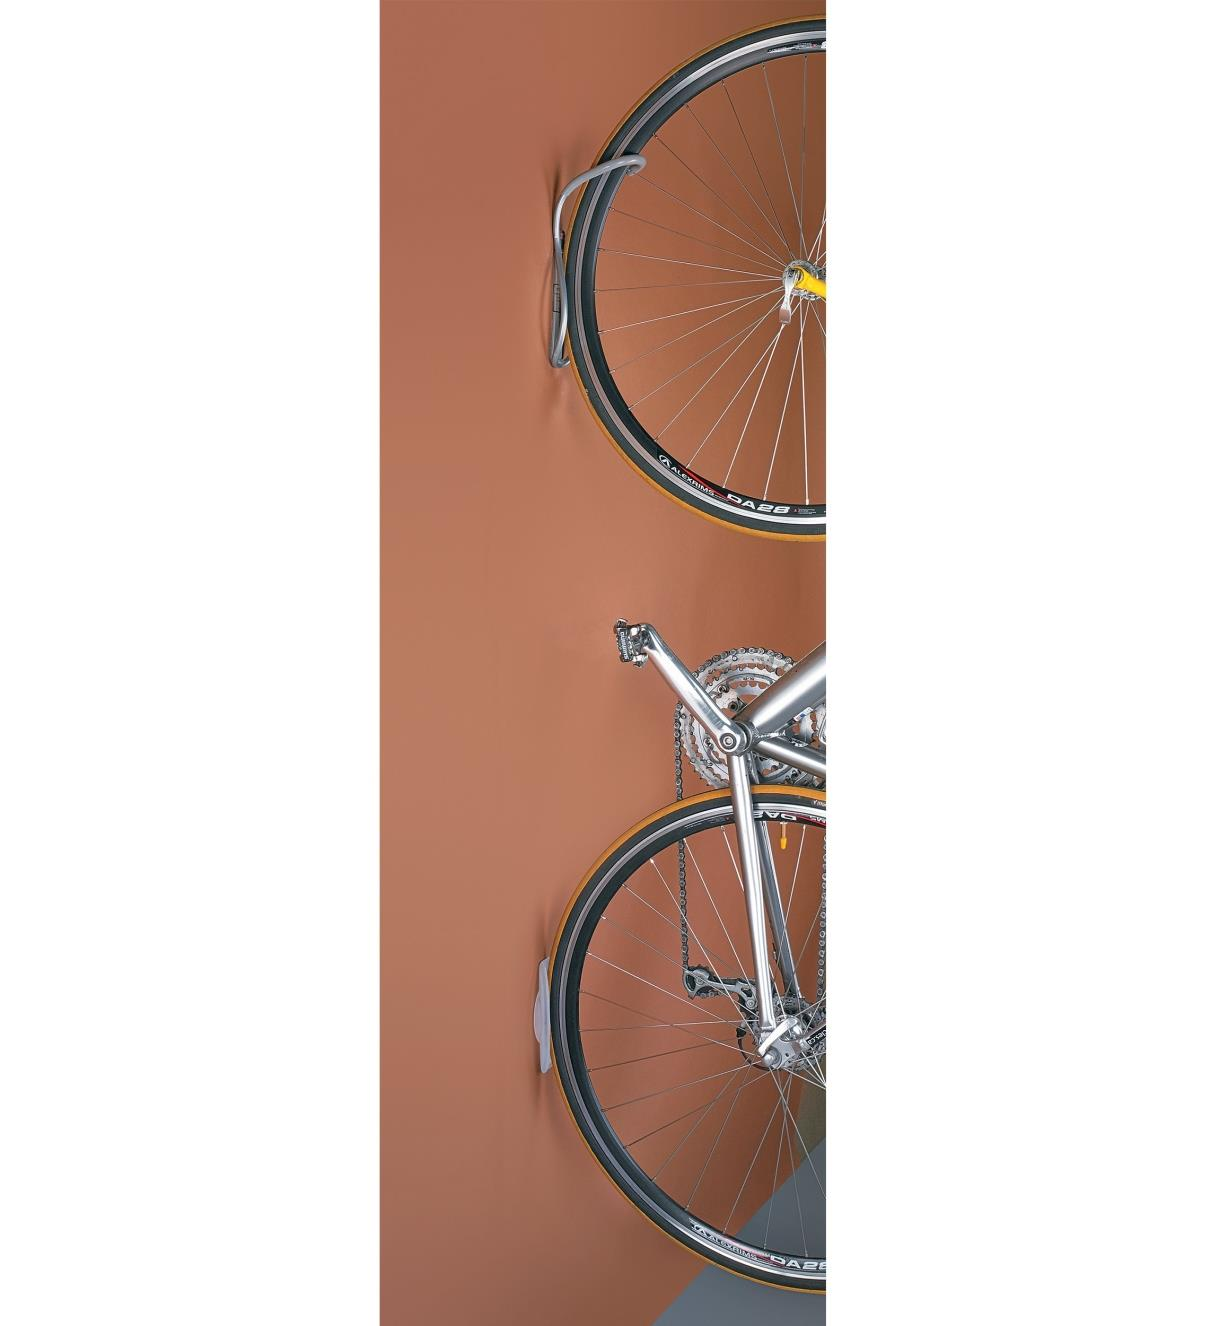 00K1801 - Vertical Single Bike Rack